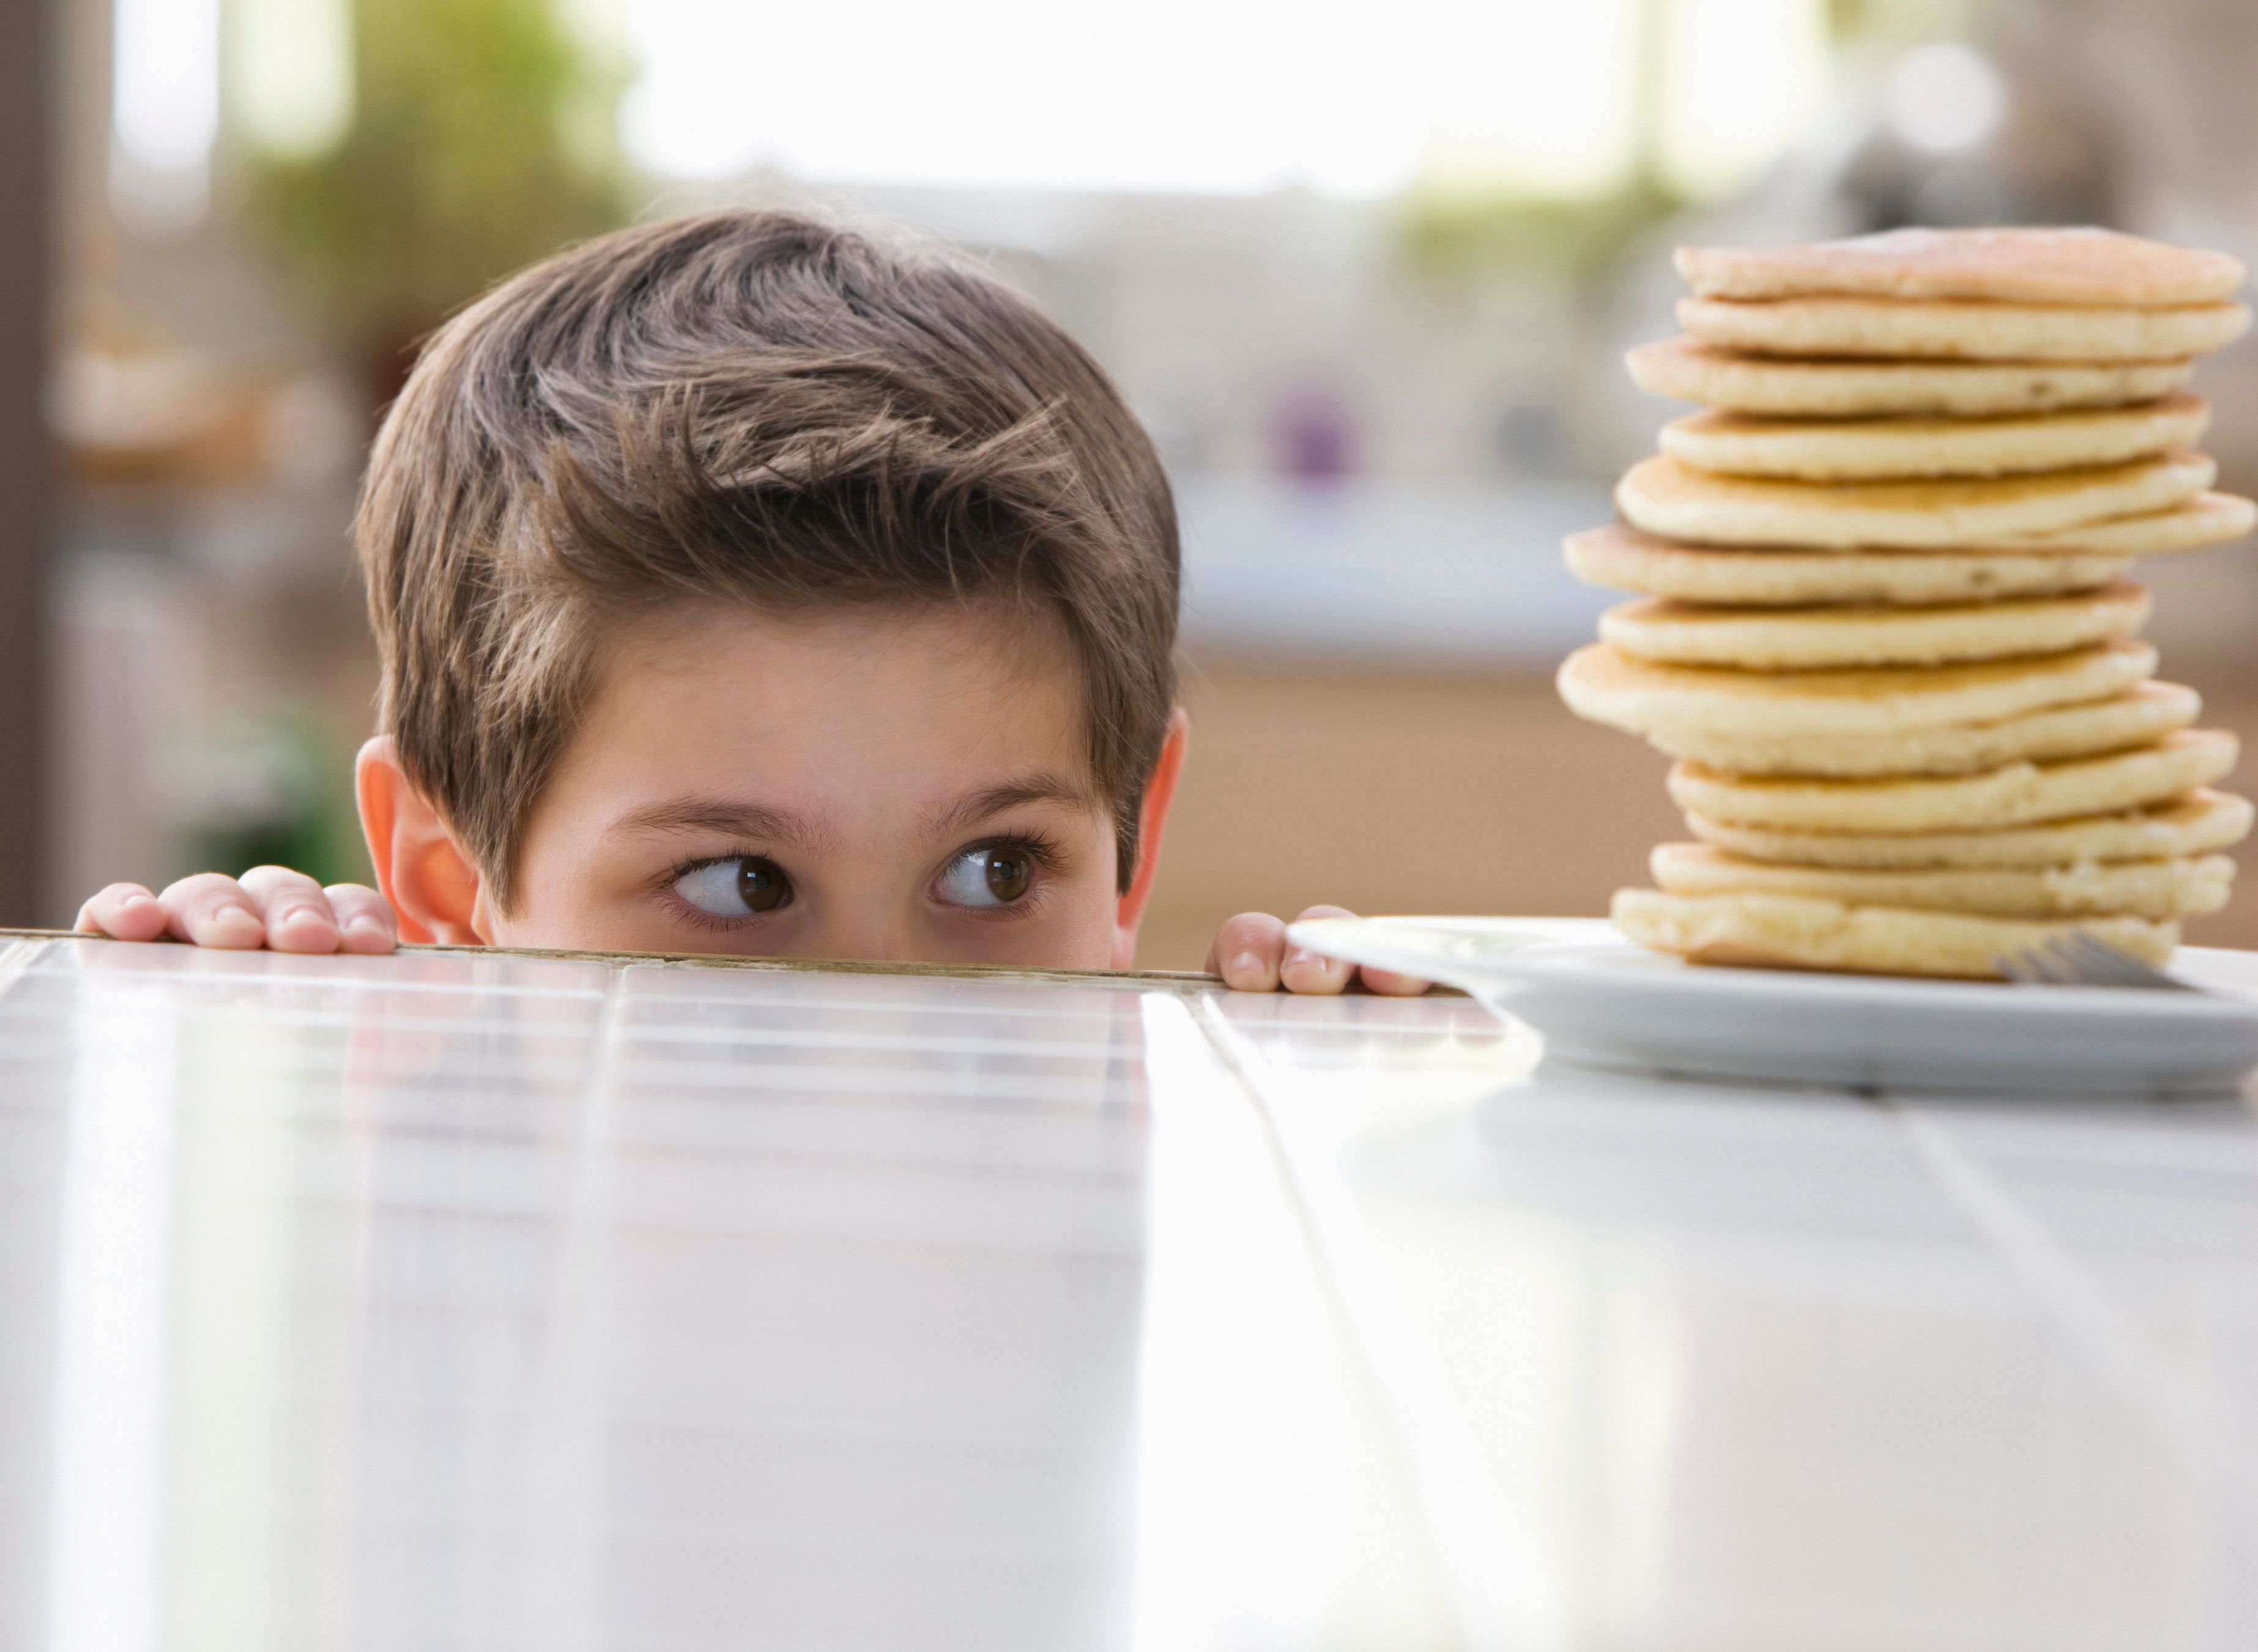 Caucasian boy looking at stack of pancakes